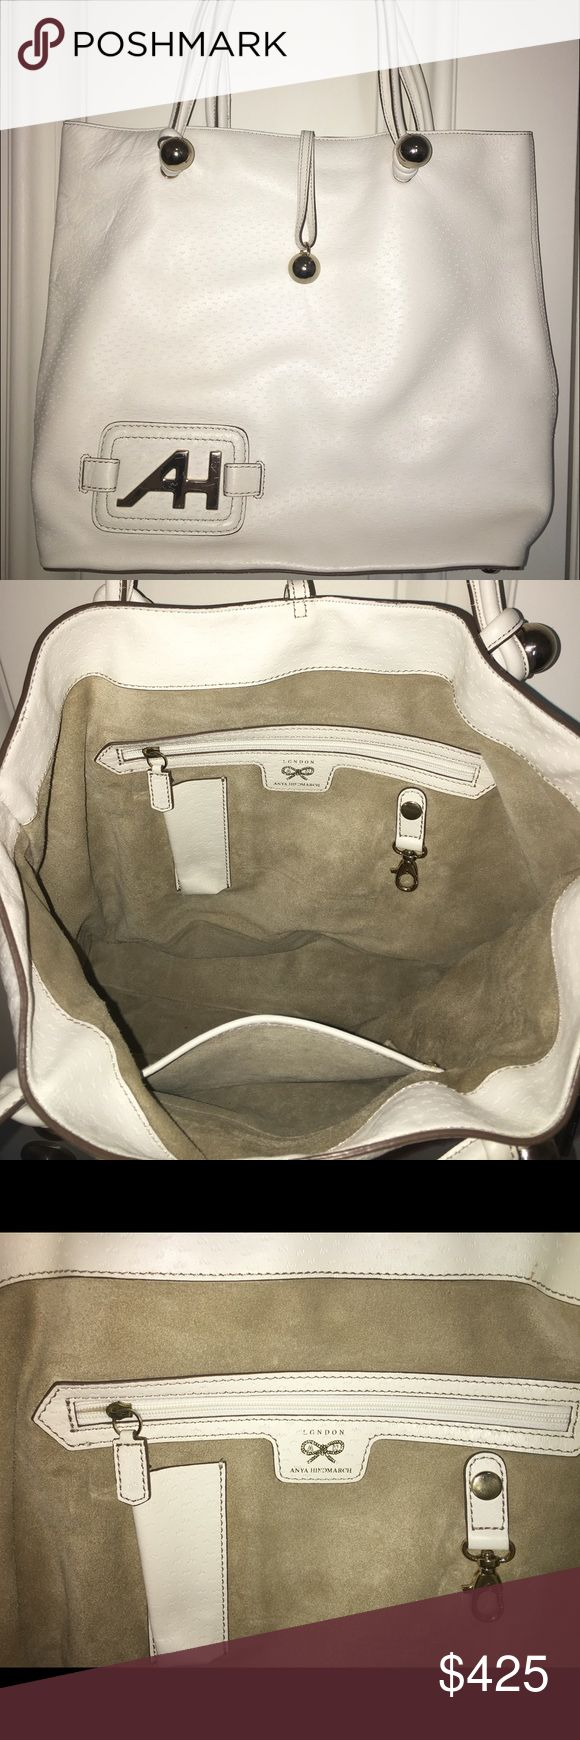 Anya Hindmarch leather tote bag 100% authentic Anya Hindmarch tote bag, white leather, excellent condition Anya Hindmarch Bags Totes